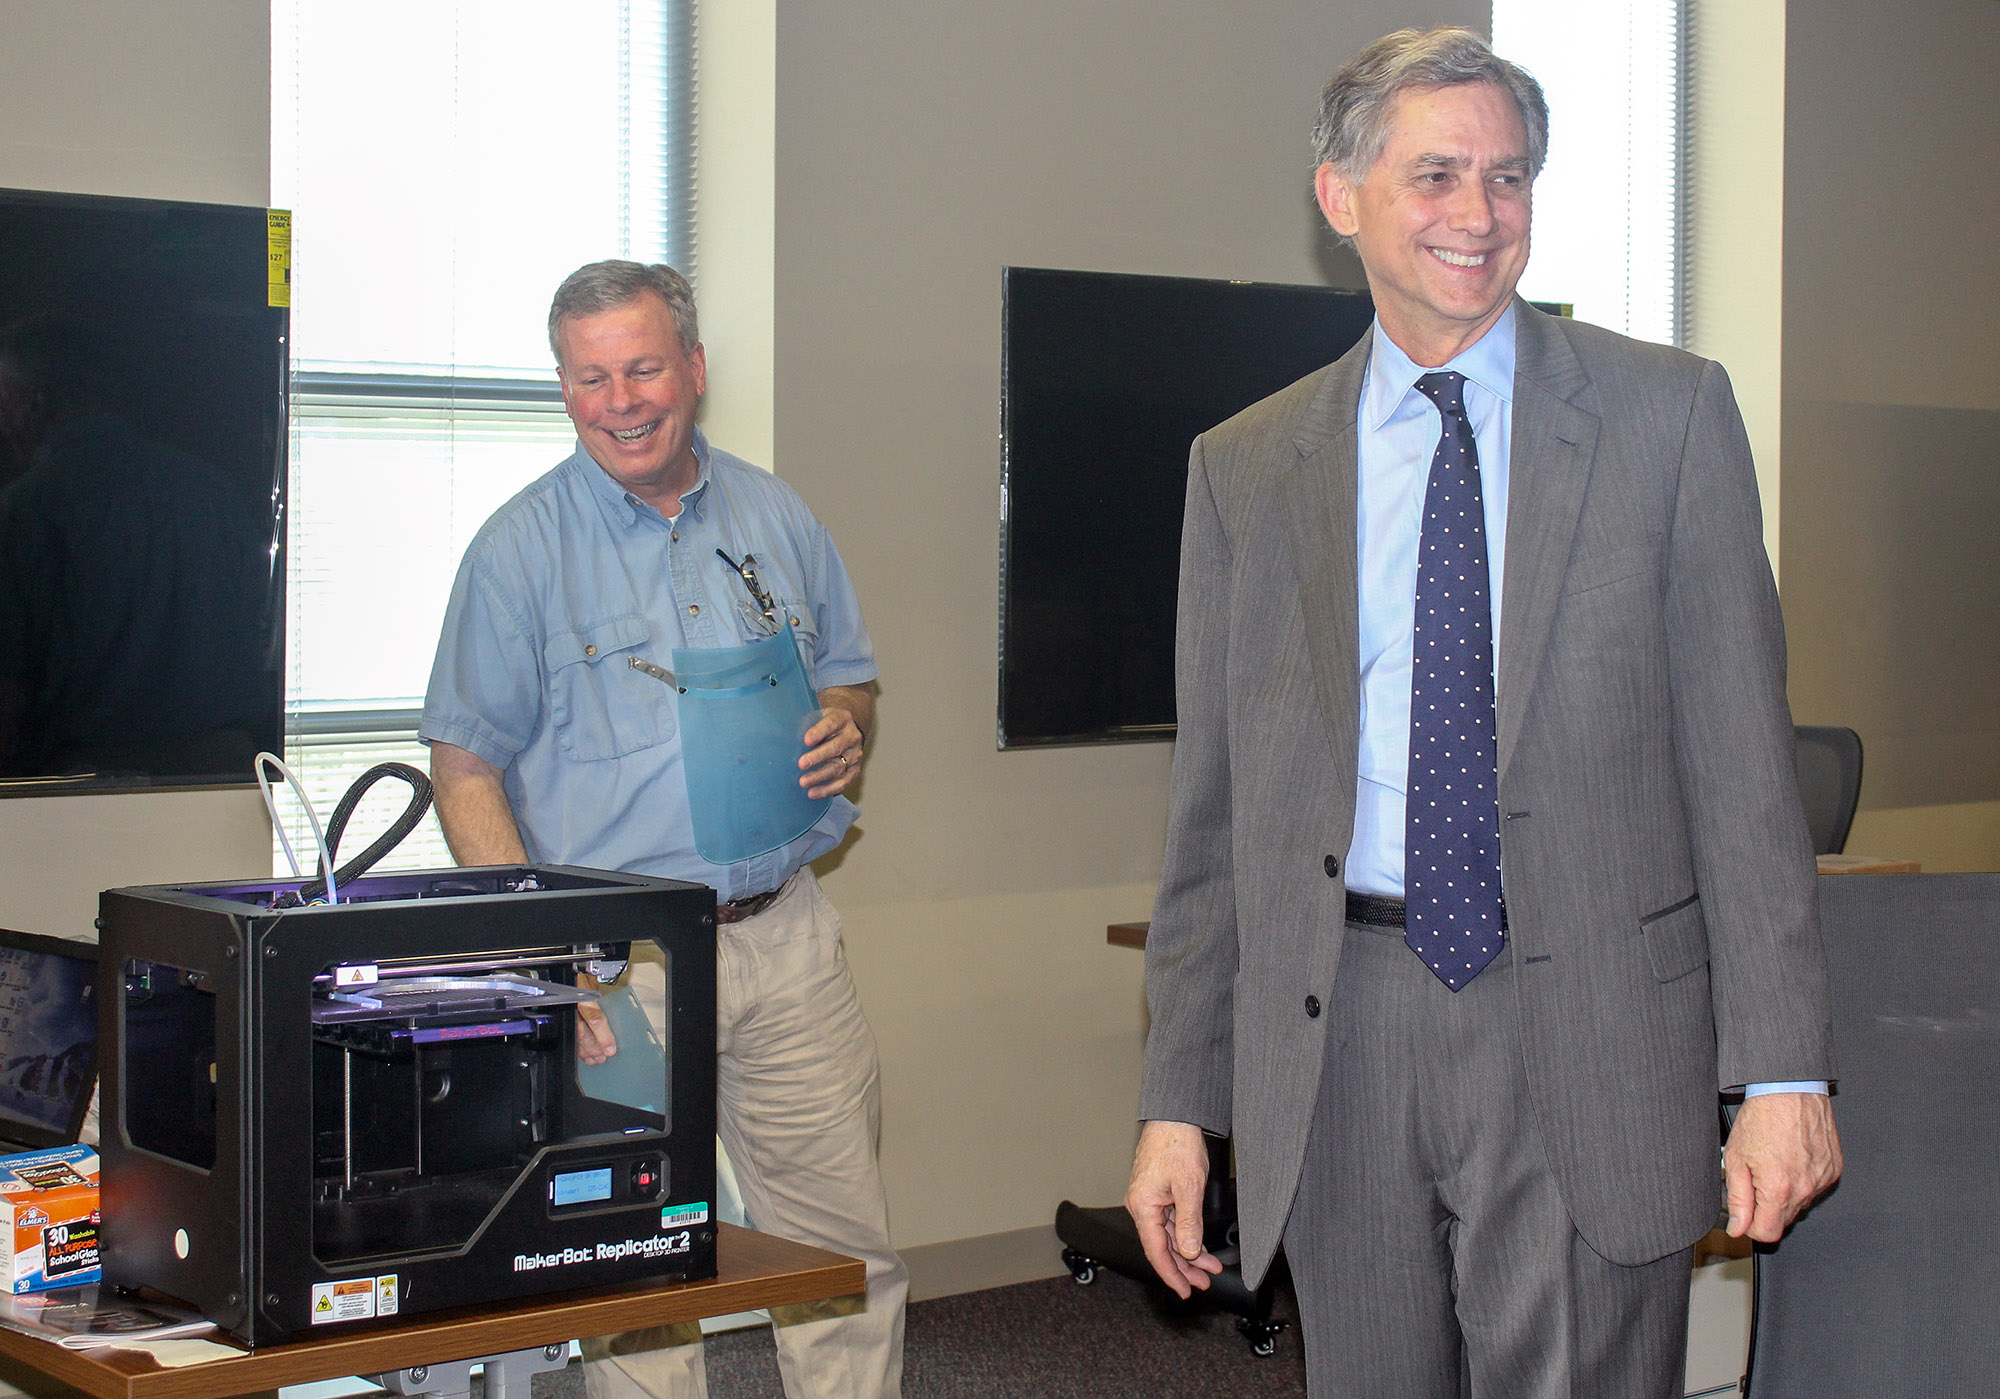 Jay Chesshir (left), president and CEO of the Little Rock Regional Chamber of Commerce, and U.S. Rep. French Hill (right) inspect the 3D printers that are printing face shields for CHI St. Vincent. Photo by Angie Faller.